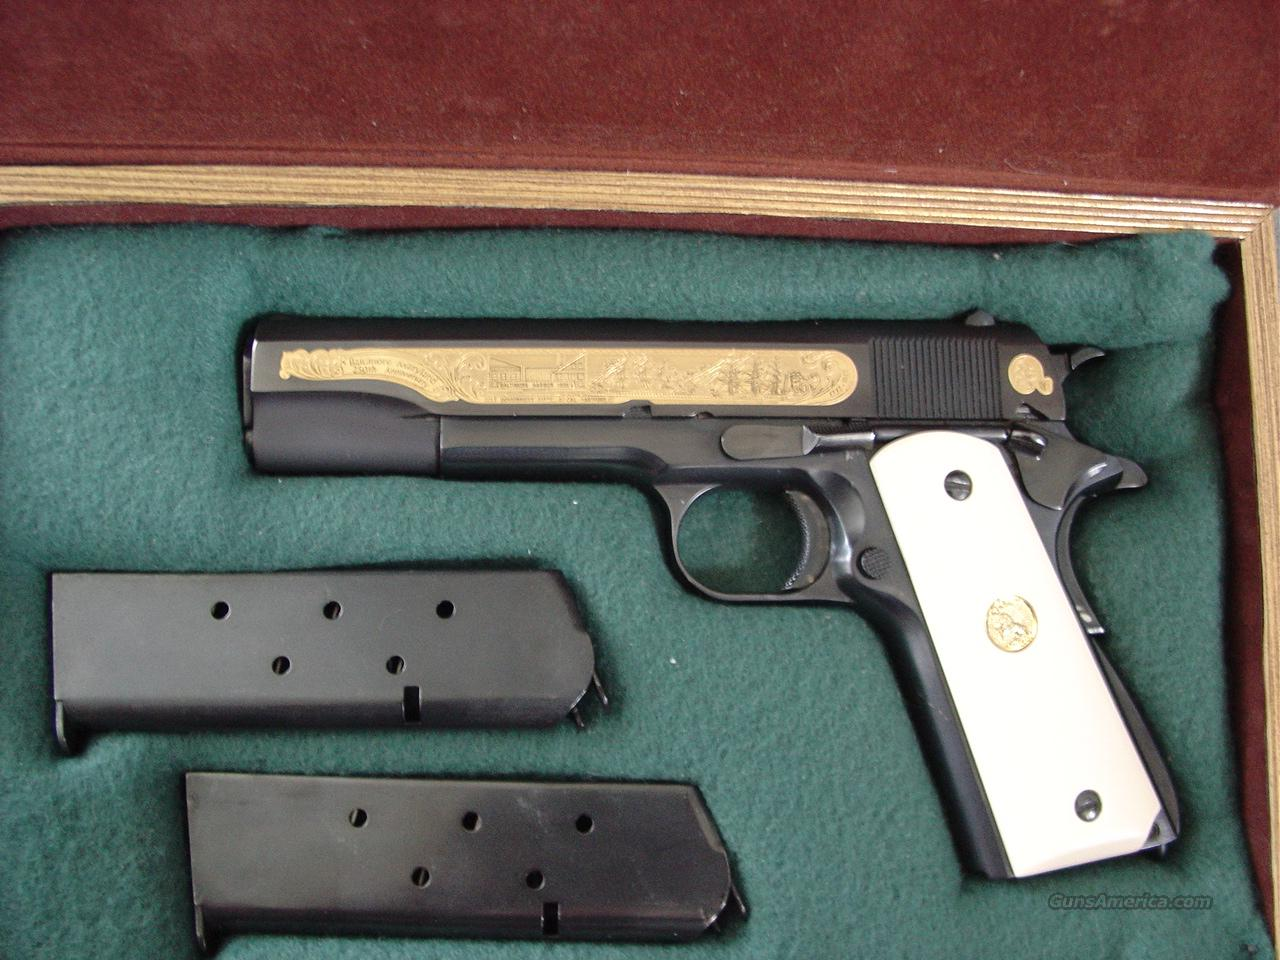 Colt 1911 Government 45acp,Baltimore Maryland 250th Anniversary commemorative,gold engraved with ships,etc,faux ivory grips & beautiful fitted pres case,that is in the shape of an antique book !! made in 1982  Guns > Pistols > Colt Commemorative Pistols